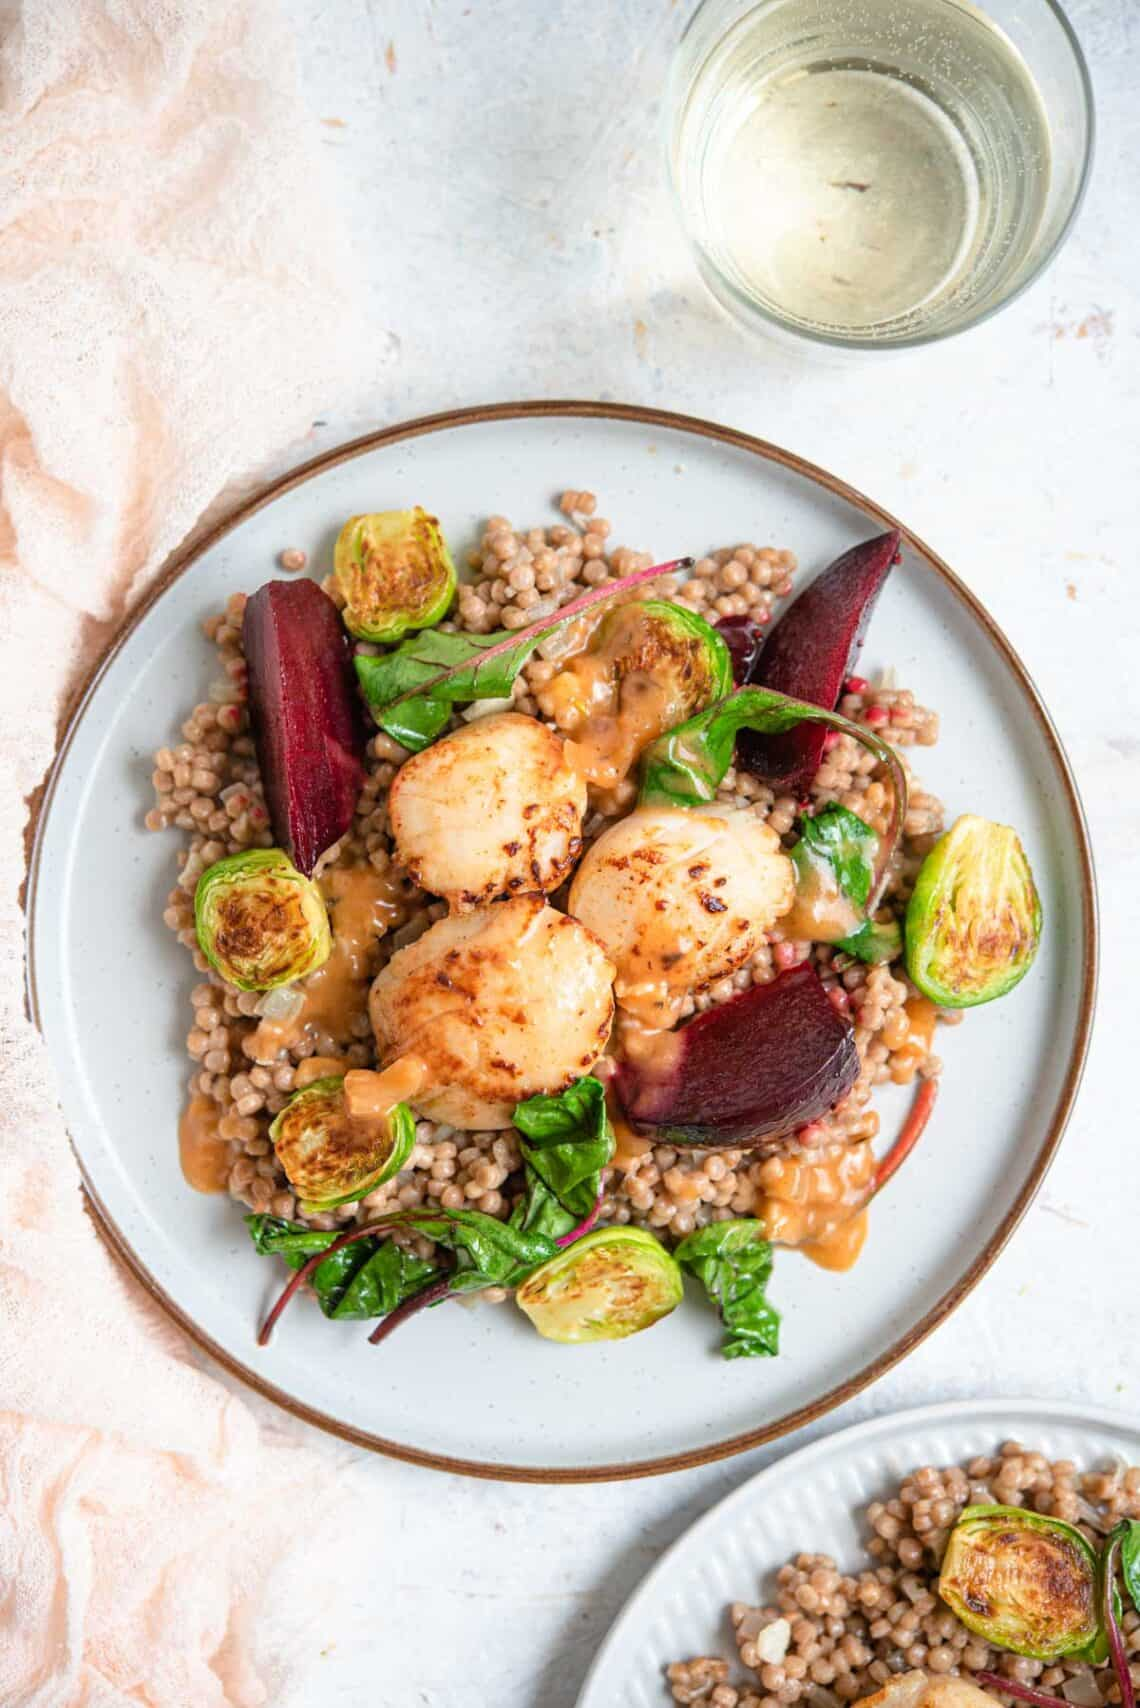 An overhead shot of 3 sauteed scallops on a plate with cous cous and veggies